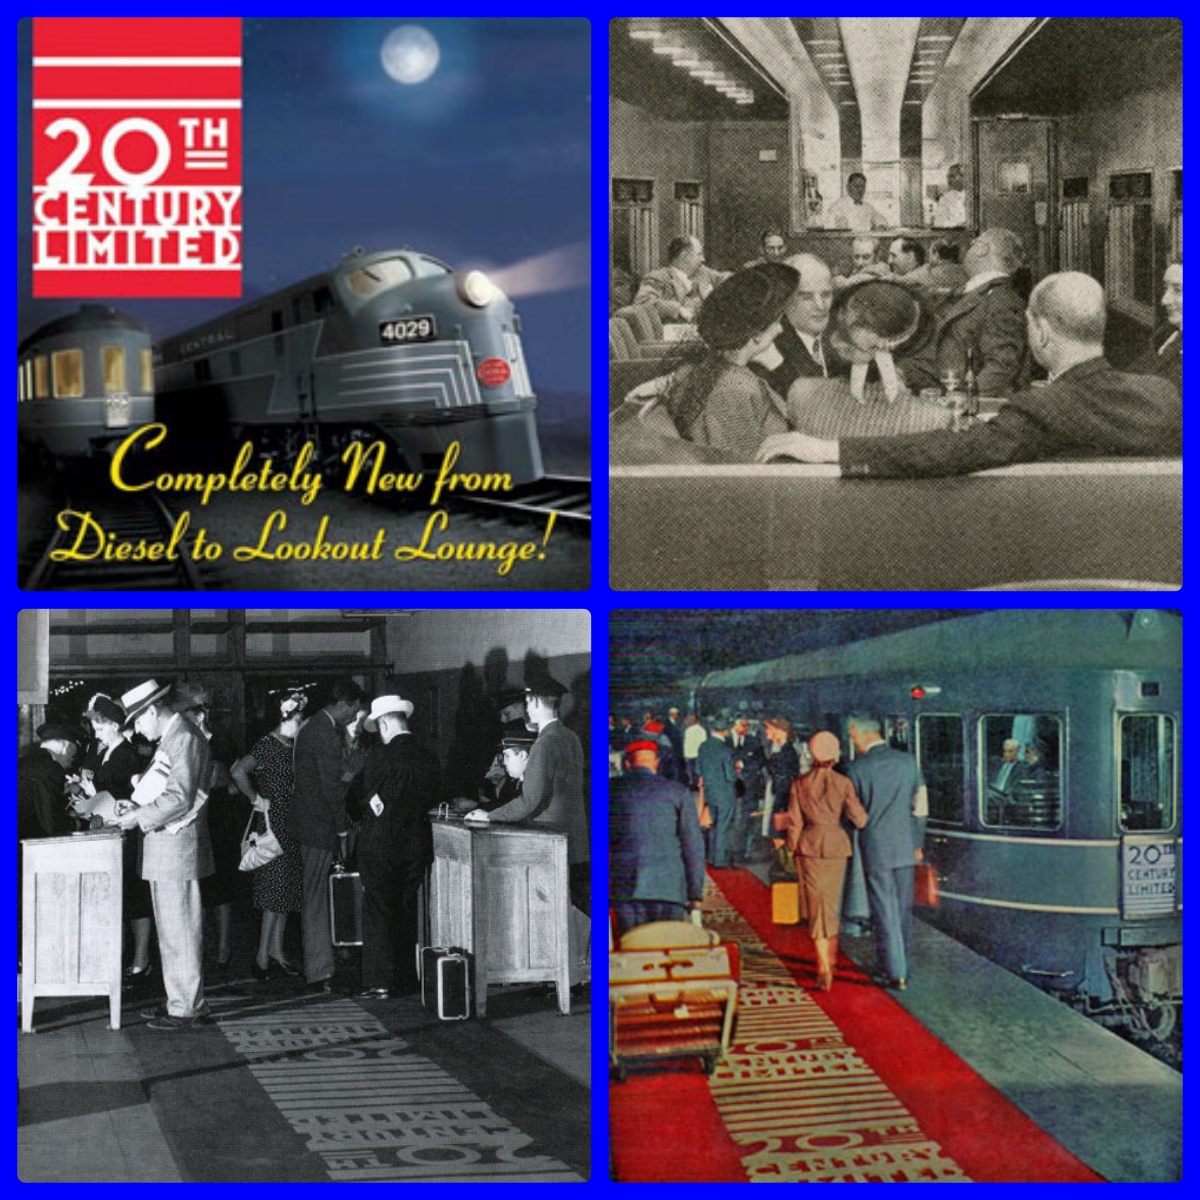 New York Central, Cary Grant, Eva Marie Saint, Alfred Hitchcock, 20th Century Limited, Pullman, First Class, Travel History, Michael L. Grace, Red Carpet Treatment, Henry Dreyfuss, Trains, Streamliners